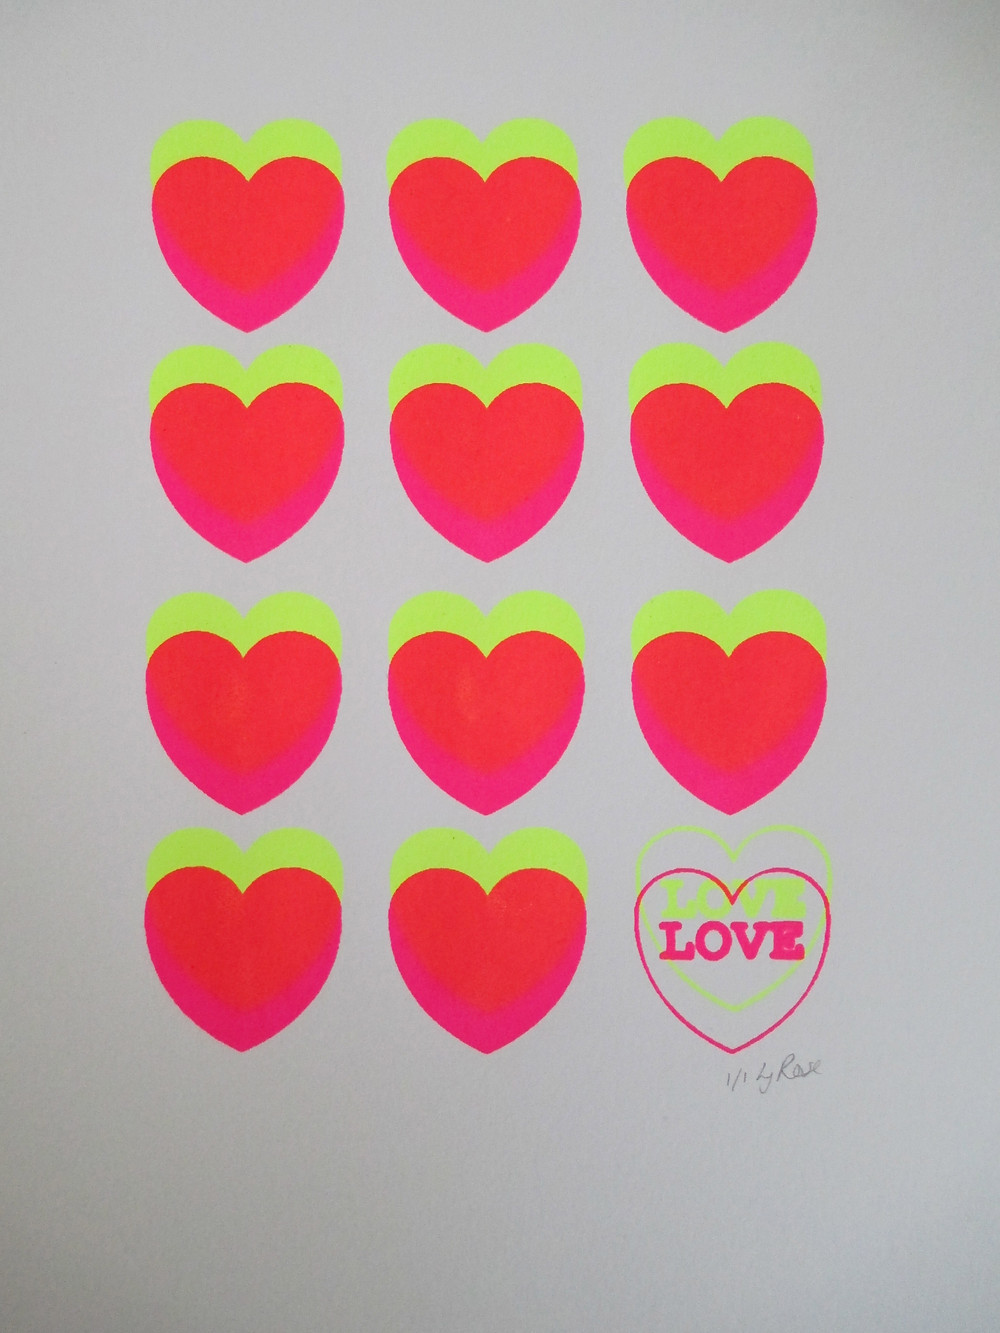 Love Hearts No 12. Availablnulle on my etsy shop.